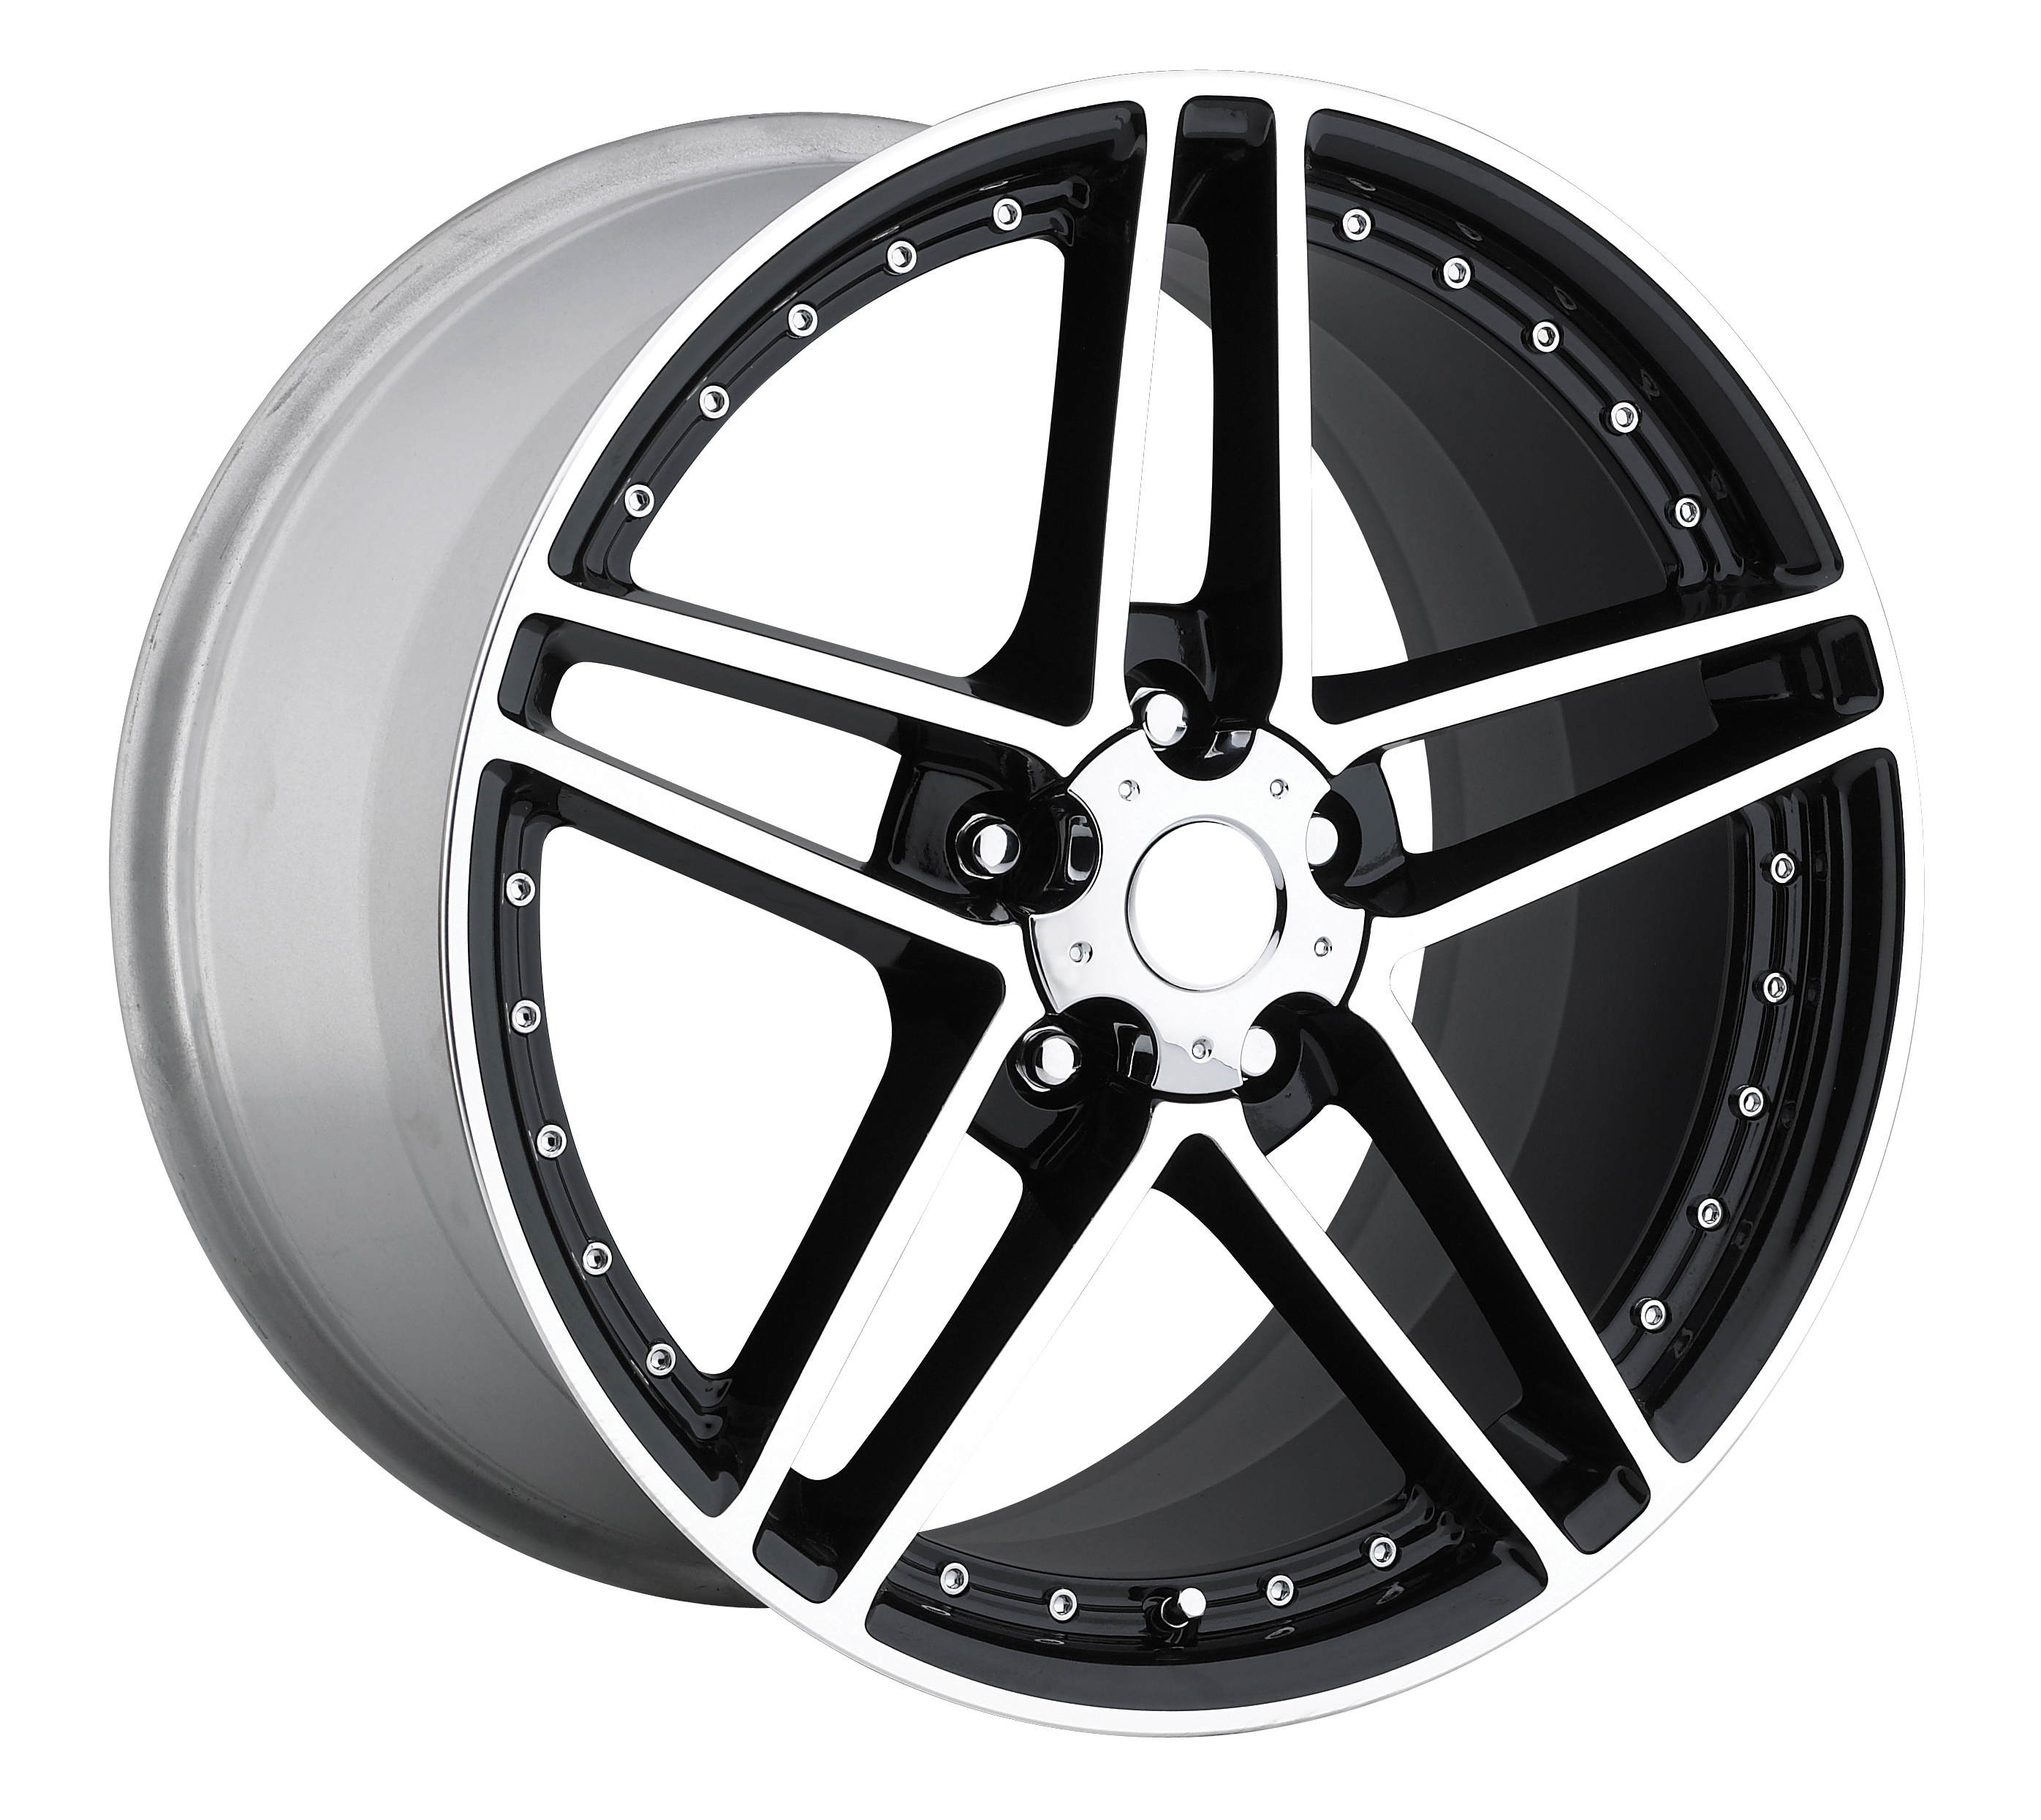 Chevrolet Corvette 1997-2012 18x9.5 5x4.75 +57 - C6 Z06 Motorsport Wheel -  Black Machine Face With Cap